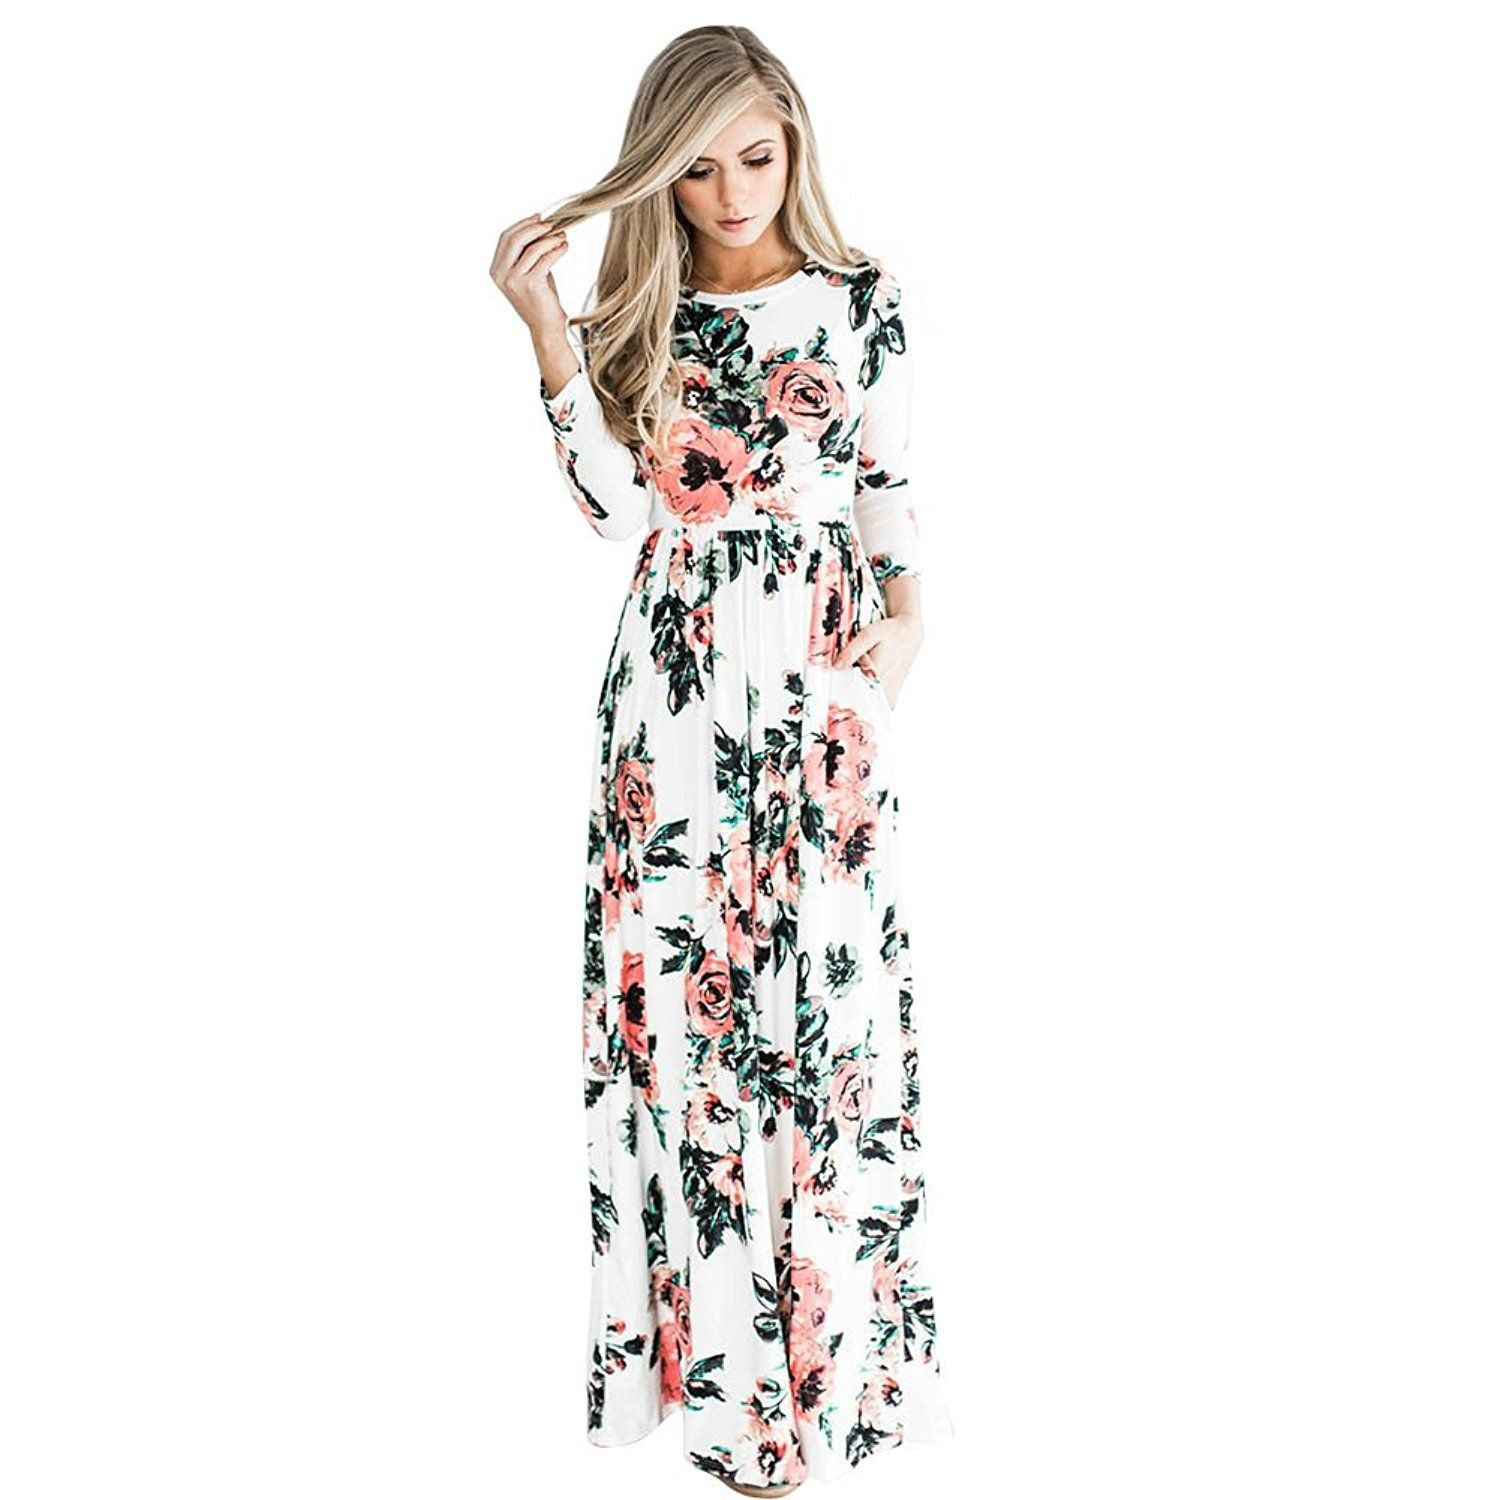 Youcoo women floral printed long sleeve empire maxi dress with